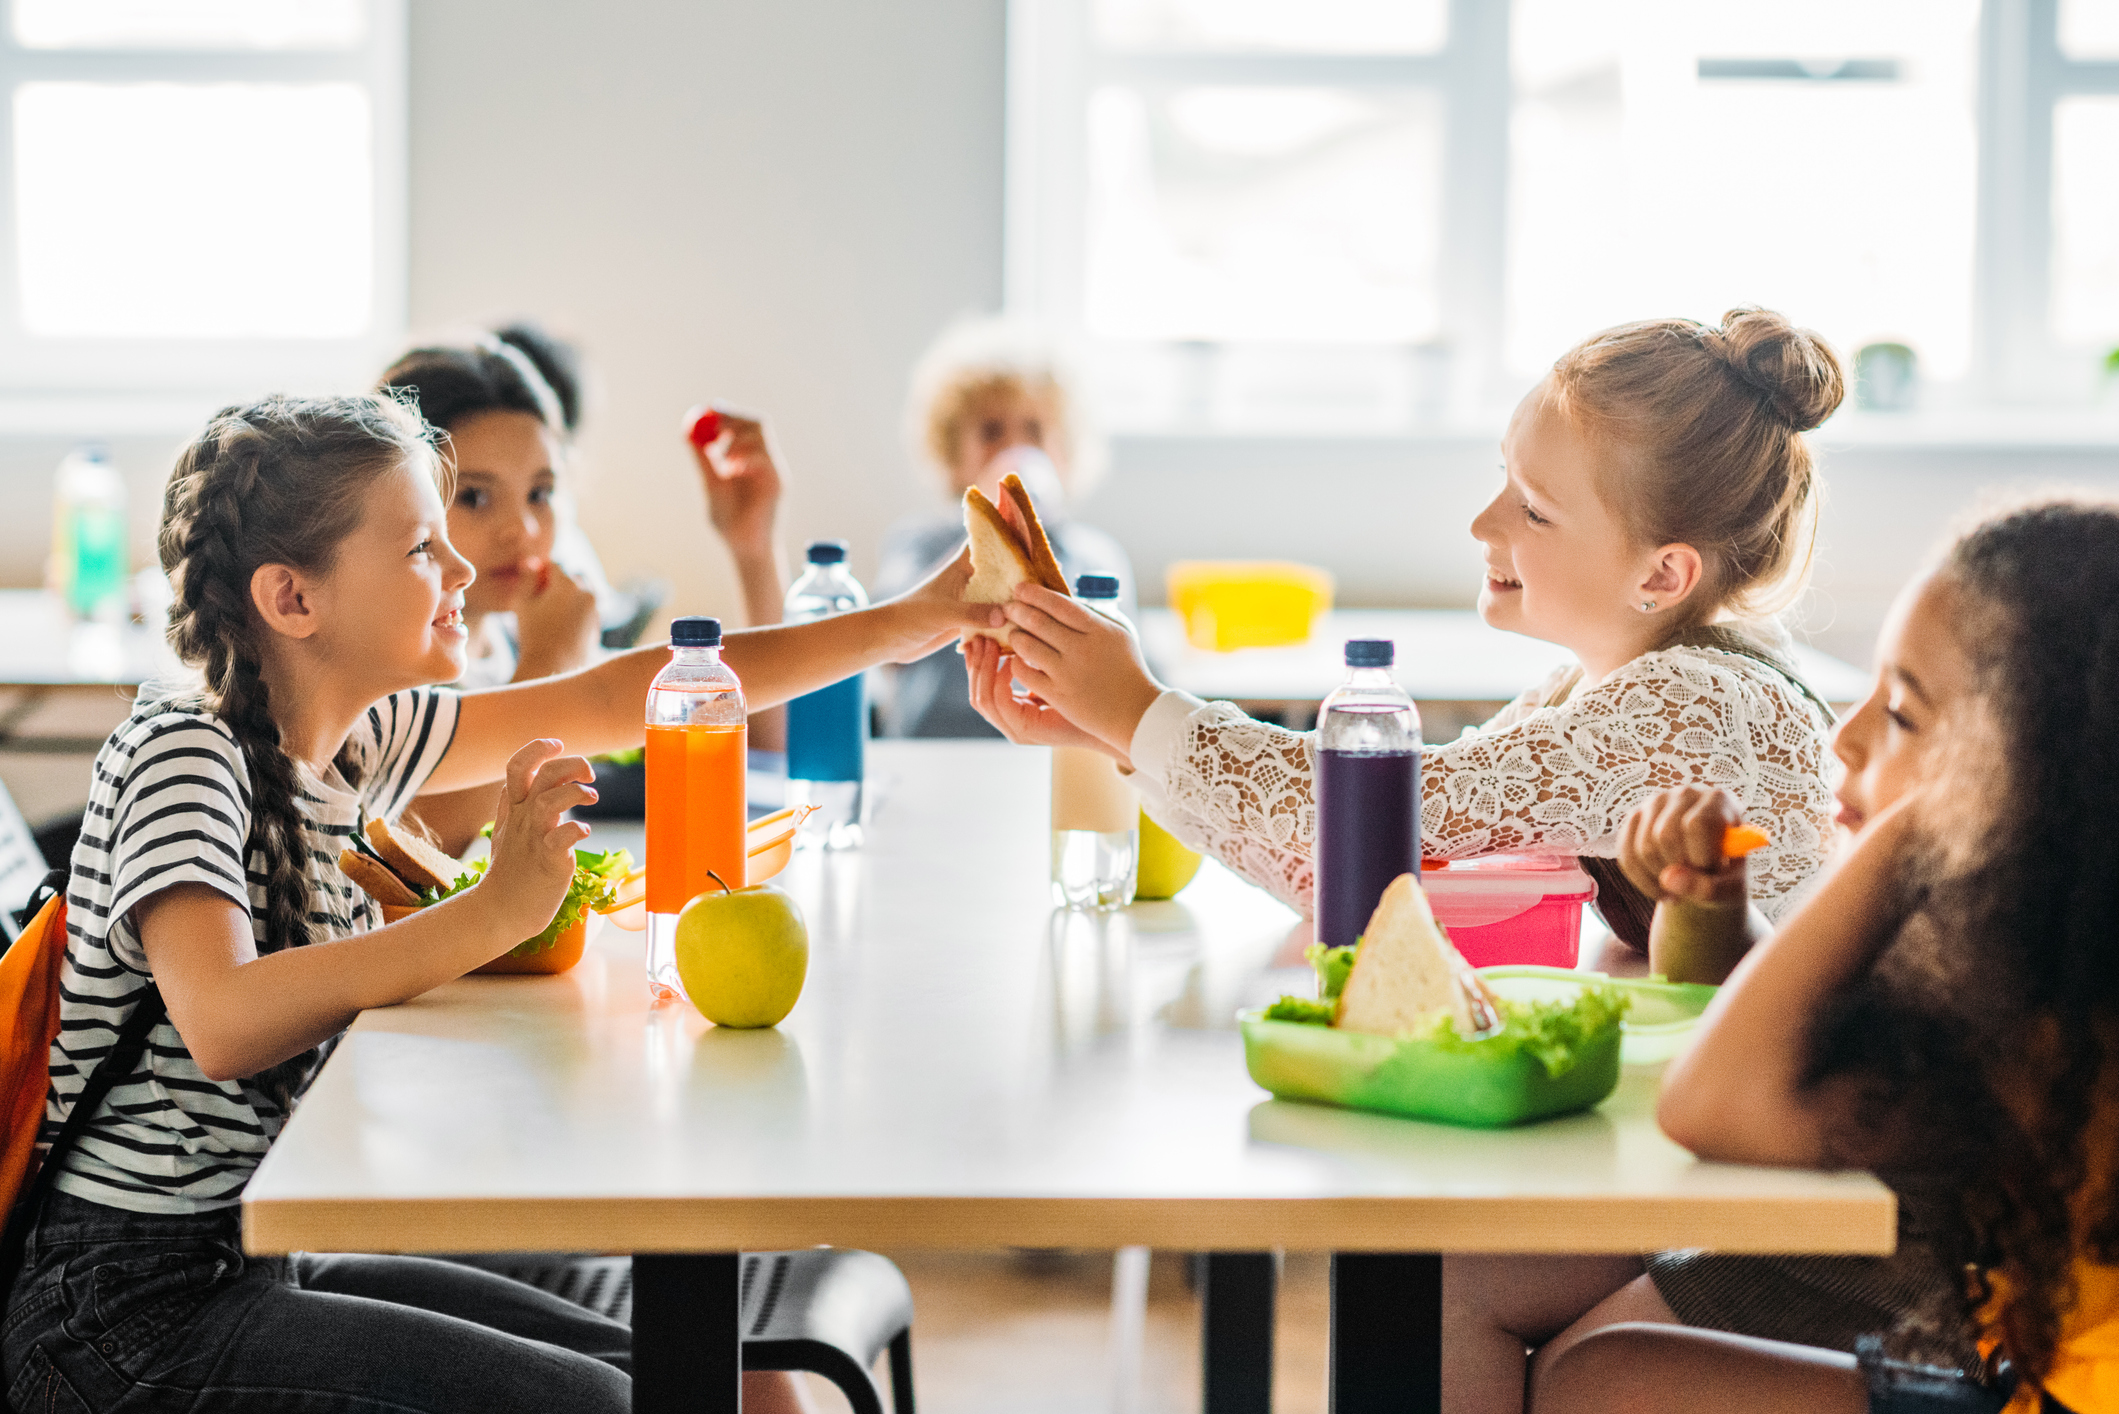 Consider A thorough planning of your kitchen/lunch space along with consulting with your state for health guidelines and possible funding with the national school lunch program.